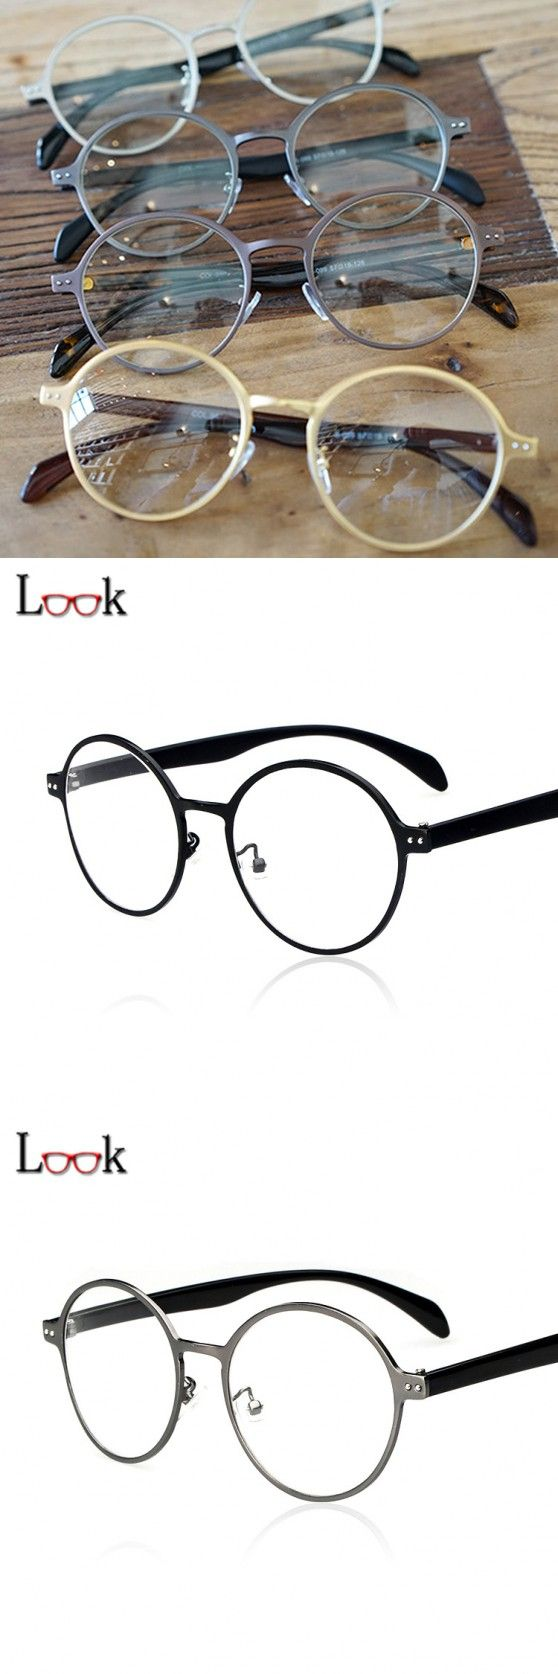 New 2016 Brand Myopia Glasses Frame Eyeglasses Optical Eye Glasses Frame For Women Men Prescription Eyewear Lentes Opticos gafas $8.38